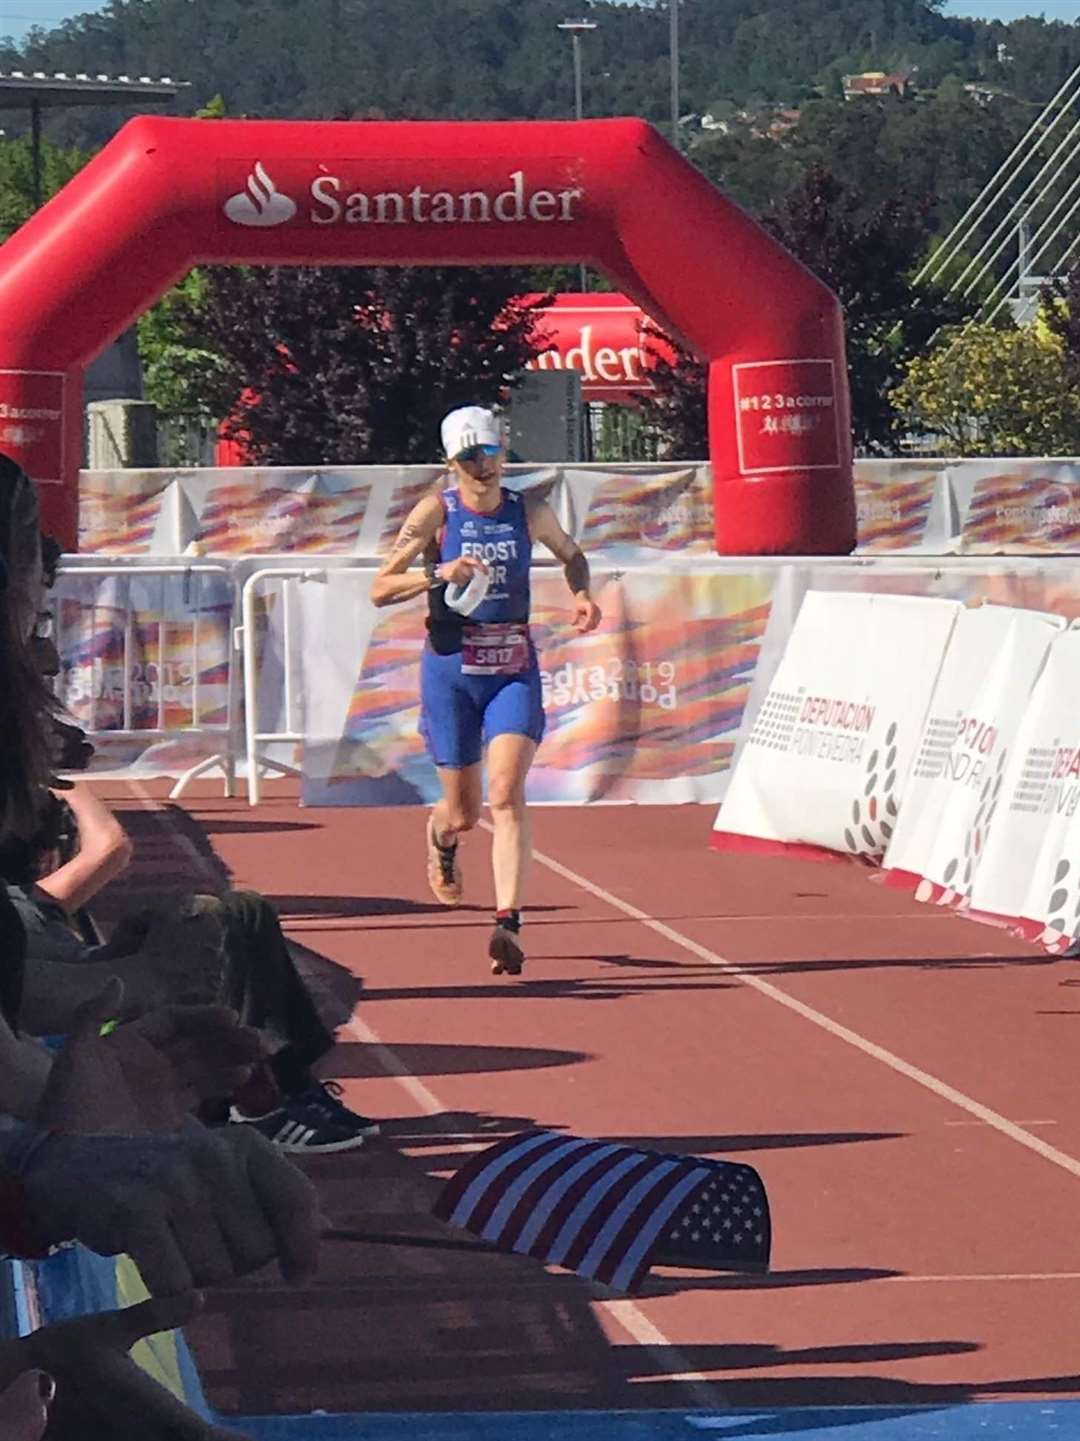 Sharon Frost completes the long distance triathlon at the ITU 2019 world multisport championships in Pontevedra, Spain to finish 18th in her age category